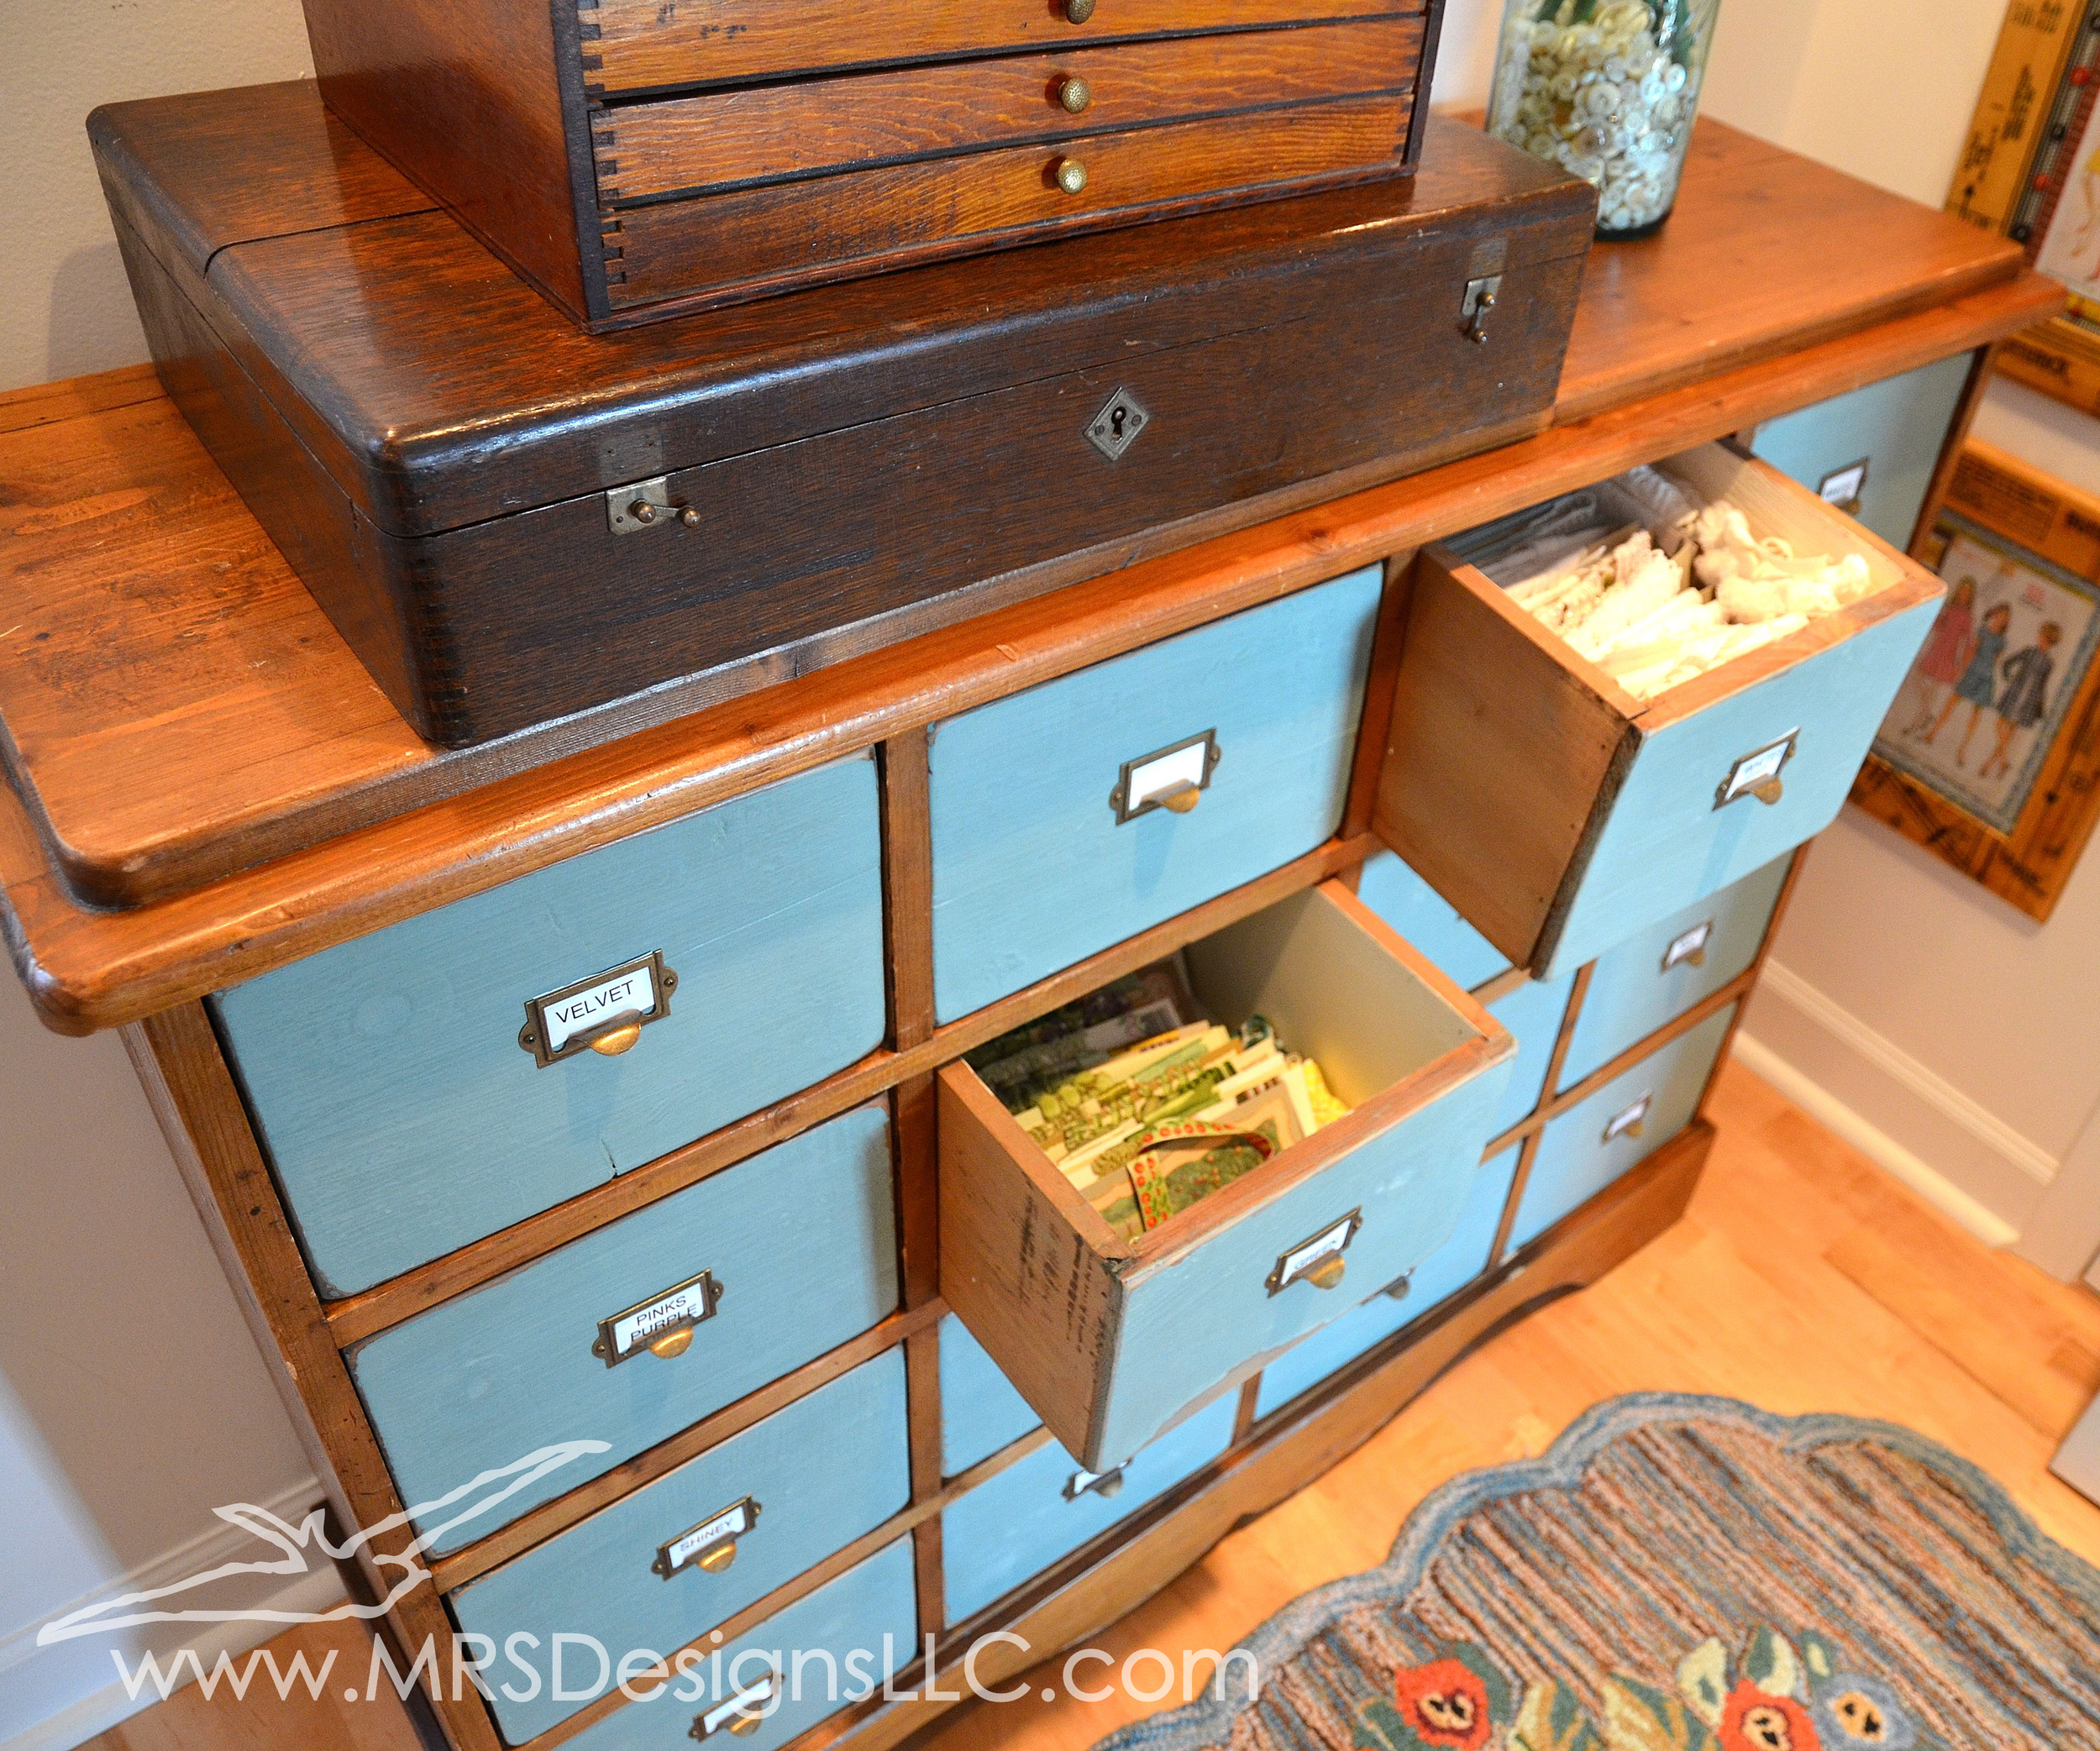 MRS Designs Blog - Refinishing a Vintage Storage Cabinet. I use it in my craft room for storing ribbon and lace